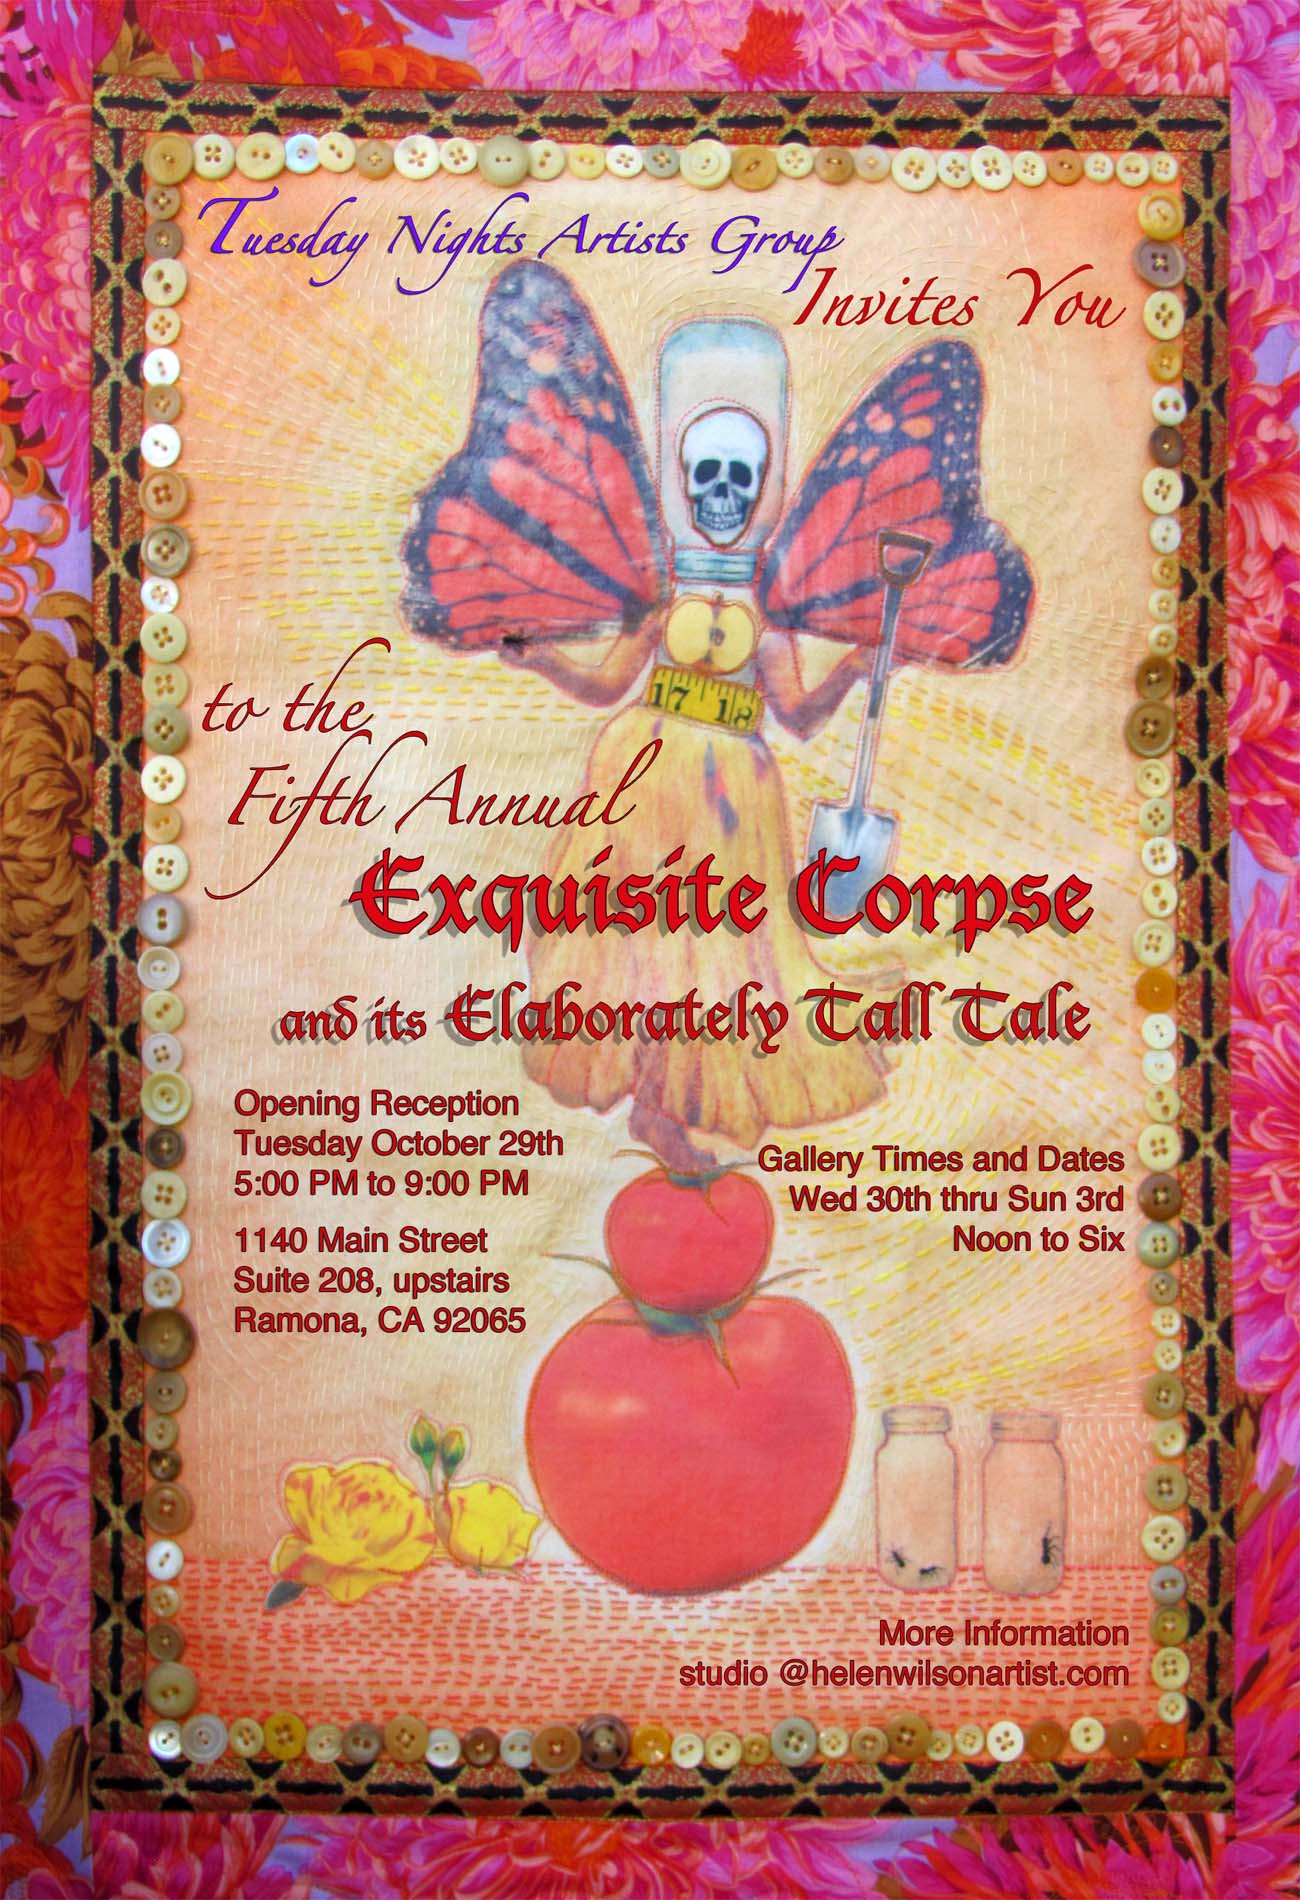 Fifth Annual Exquisite Corpse